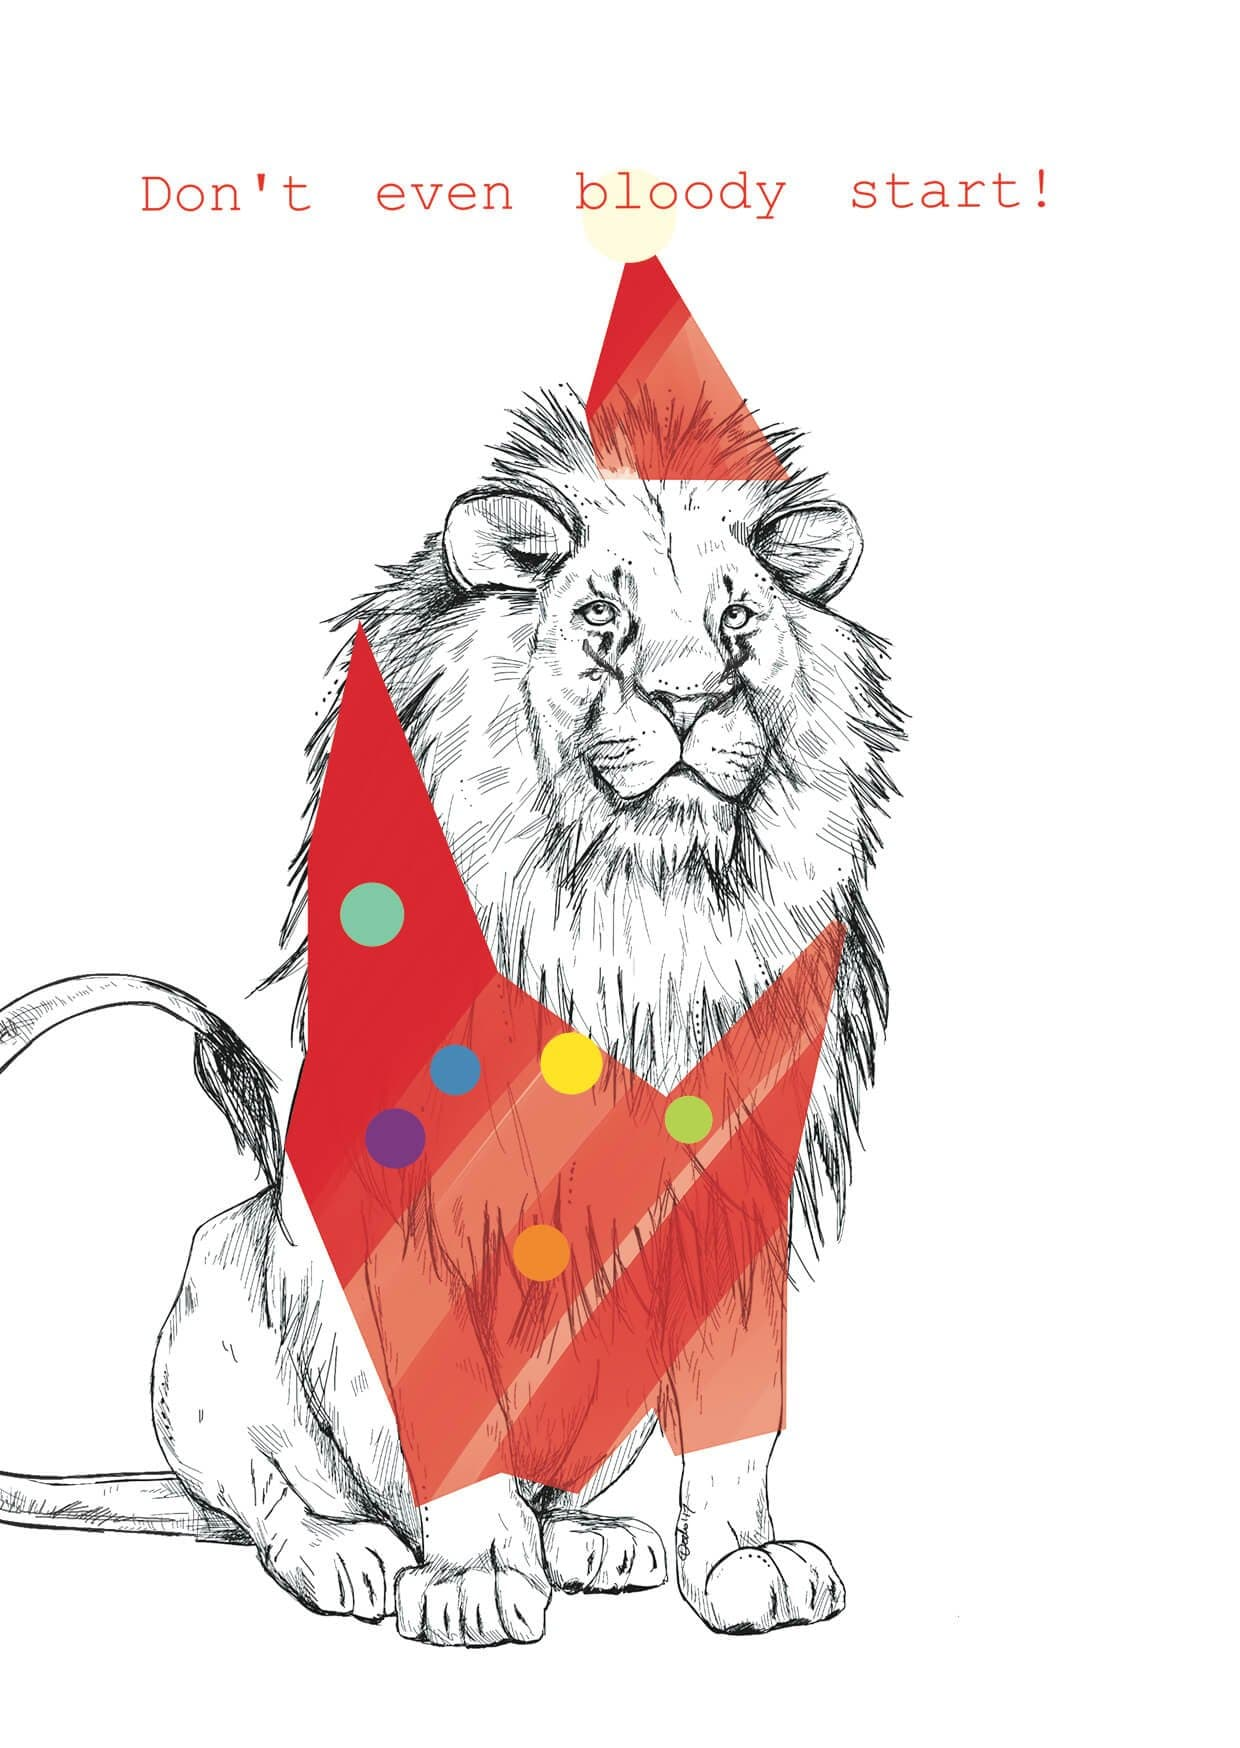 This lion doesn't like christmas. The message is Don't even bloody start.